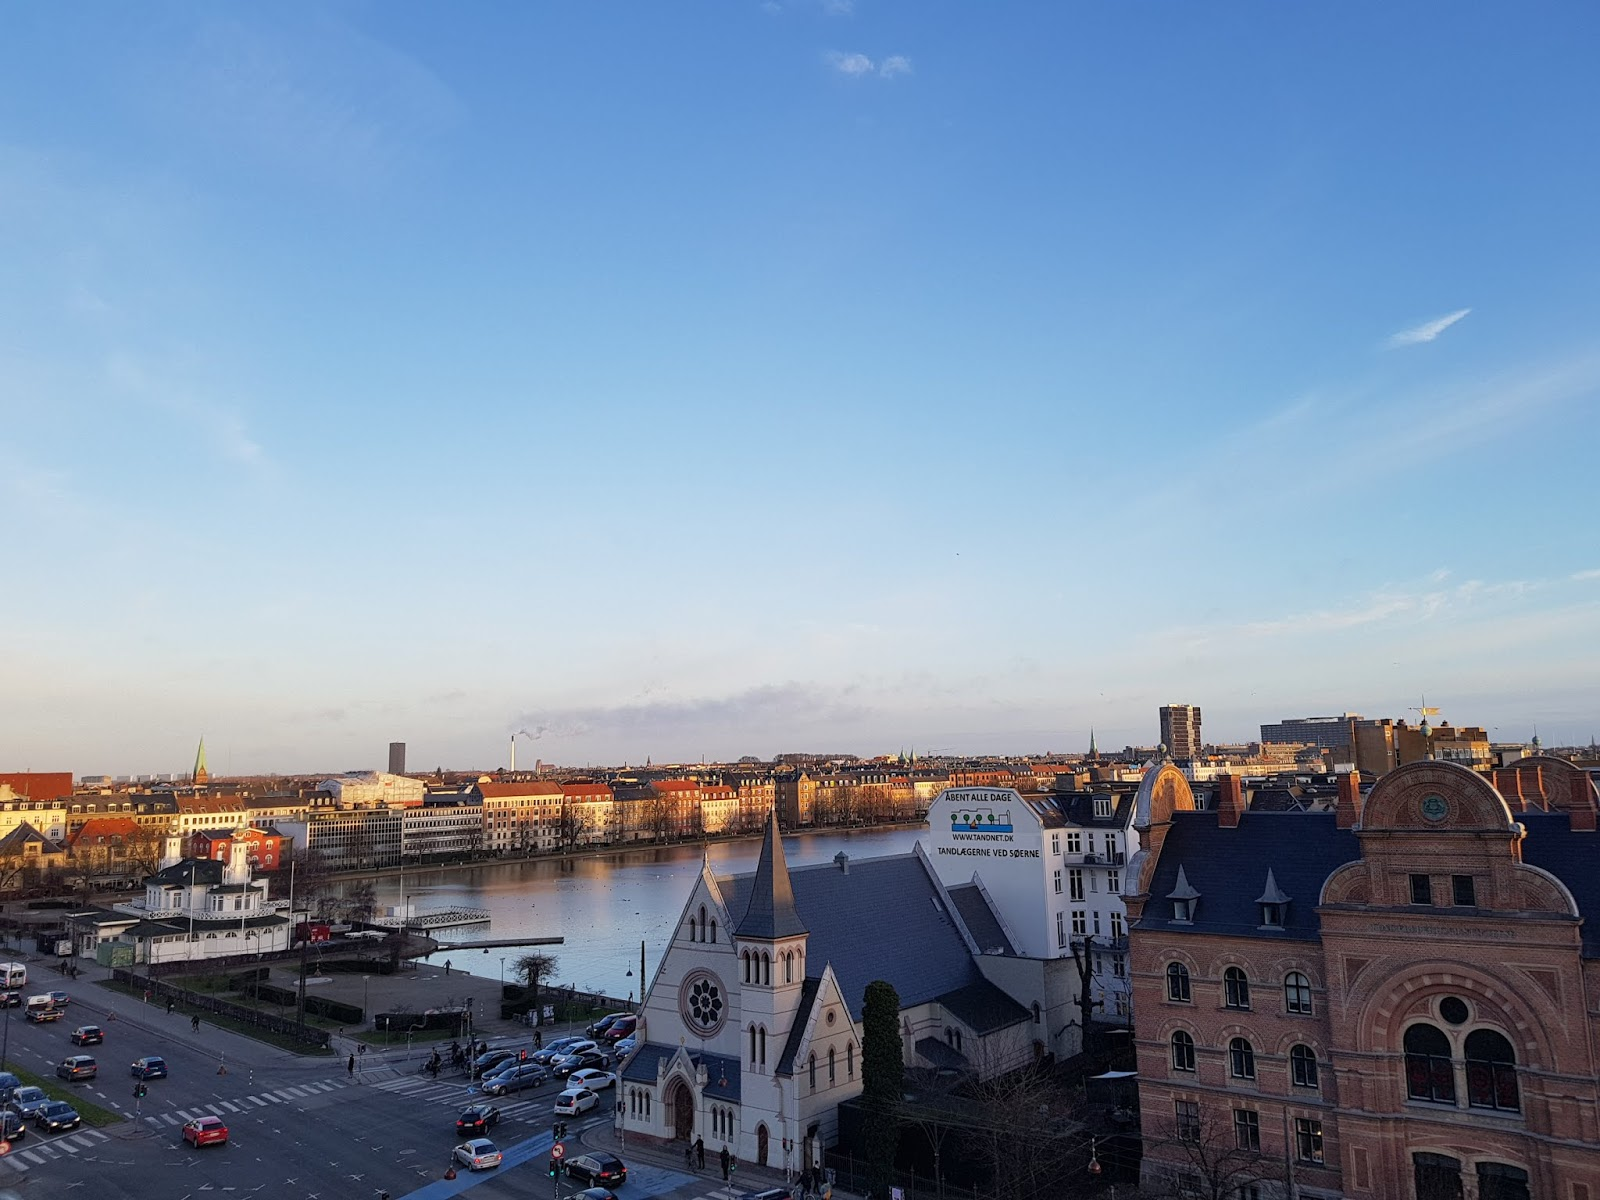 Manon Les Suites Petit Suite Review - Eco hotels in Copenhagen - Copenhagen Skyline Rooftop Cafe